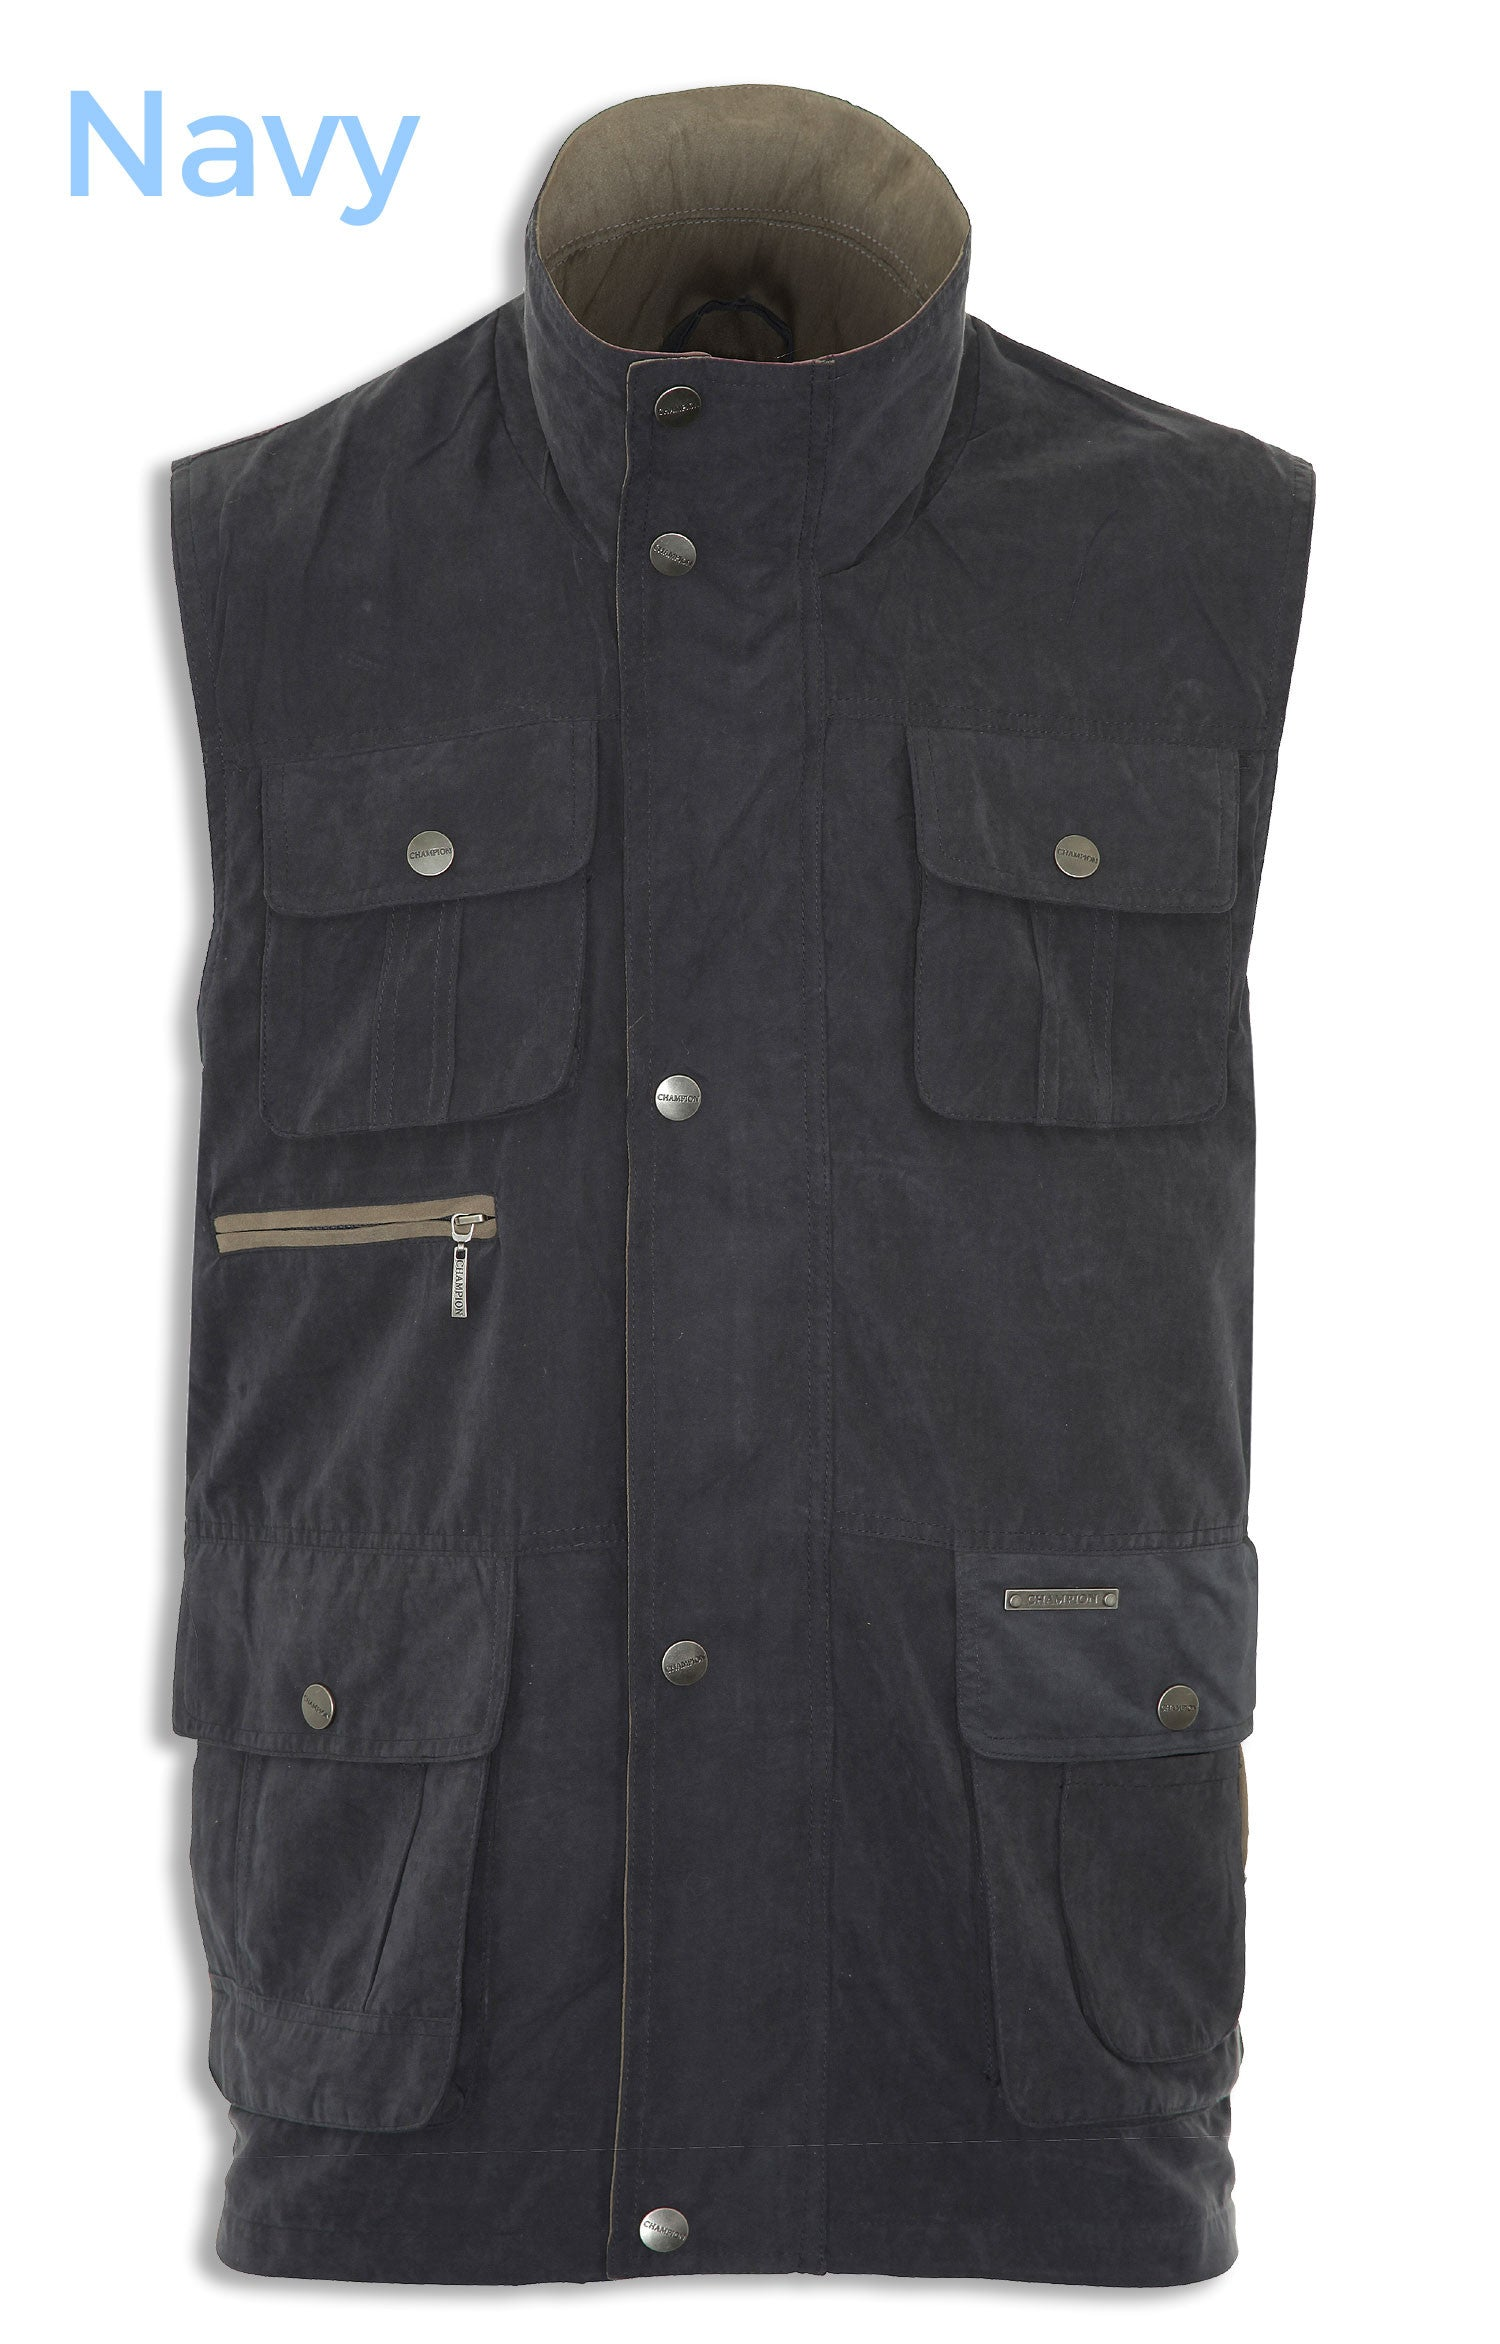 navy Champion Farnham Light weight Multi Pocket Bodywarmer vest